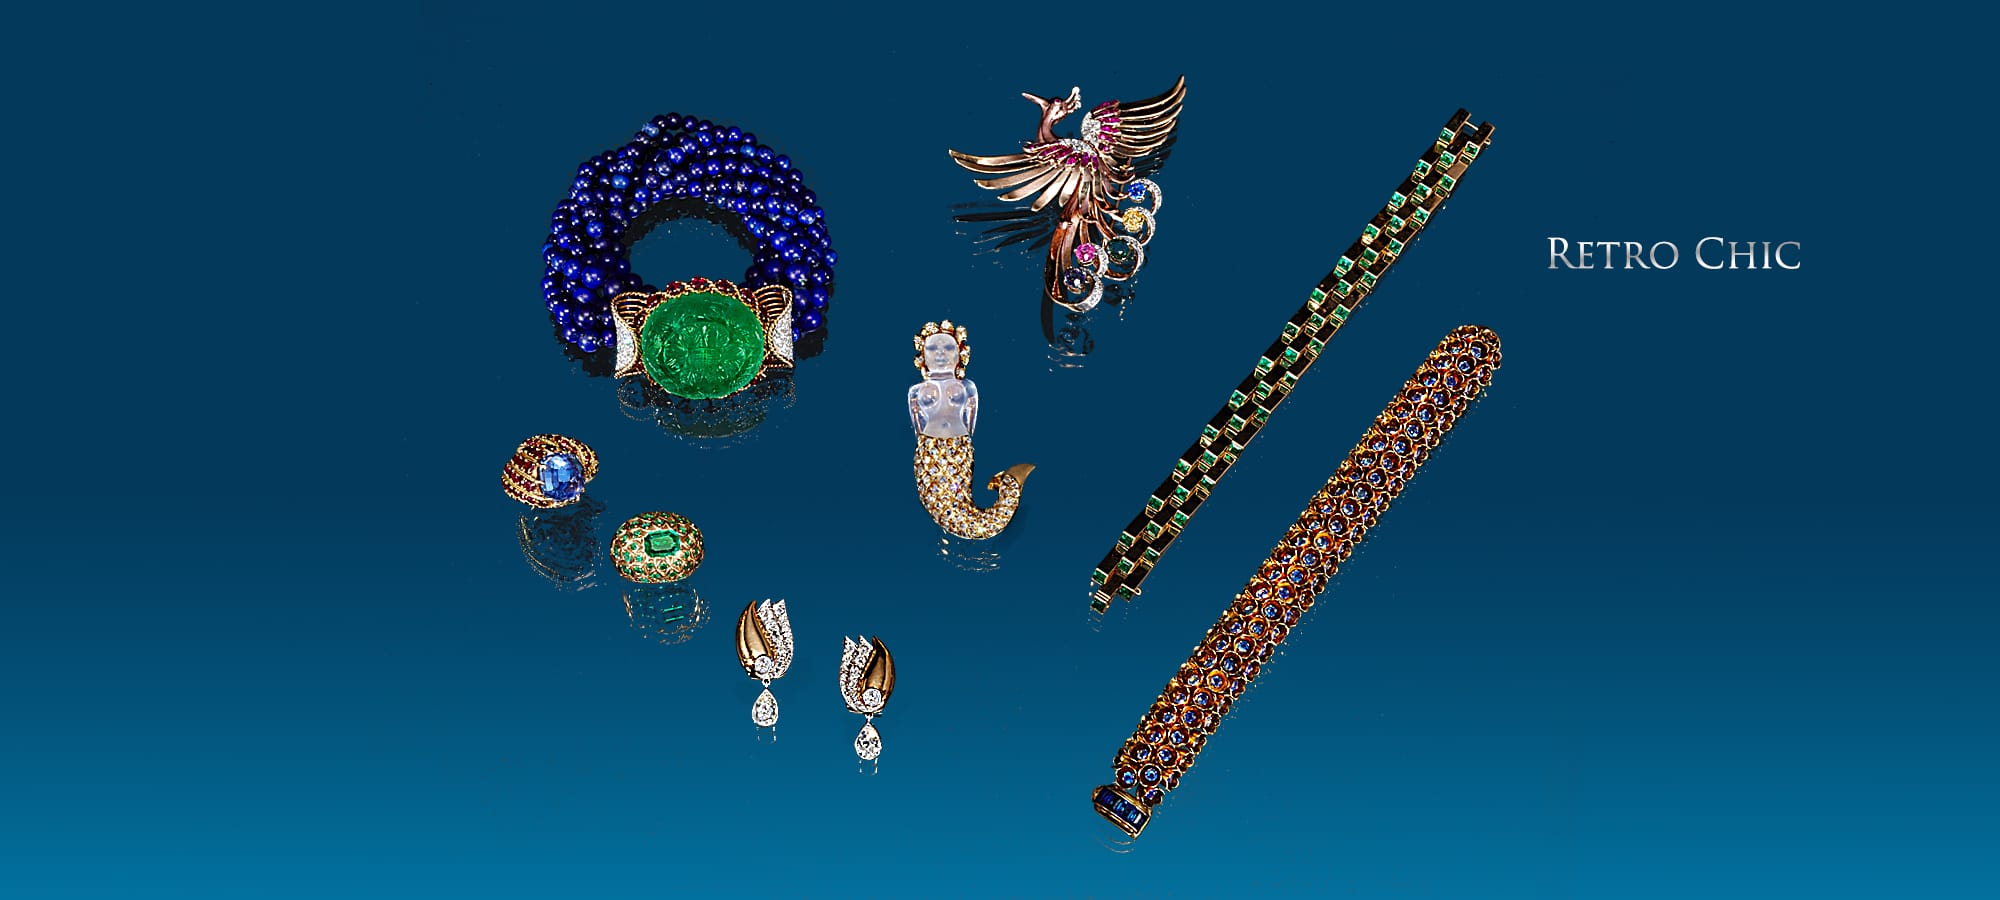 Carved Emerald, Ruby and Diamond Bracelet with Lapis Beads by Cartier, Paris. Formerly in the Estate of the Rothchild Family, Sapphire and Ruby Ring in Gold by Marshack, Paris, Emerald Ring in Gold by Rene Boivin, Paris, Diamond and Gold Earrings by Suzanne Belperron, Paris, Sapphire Flower Bracelet in Gold by Boucheron, Paris, Emerald Escalier Bracelet by Boucheron, Paris, Rock Crystal and Diamond Mermaid Brooch in Gold by Rene Boivin, Paris, Multi-Color Sapphire and Diamond Phoenix Brooch in Gold